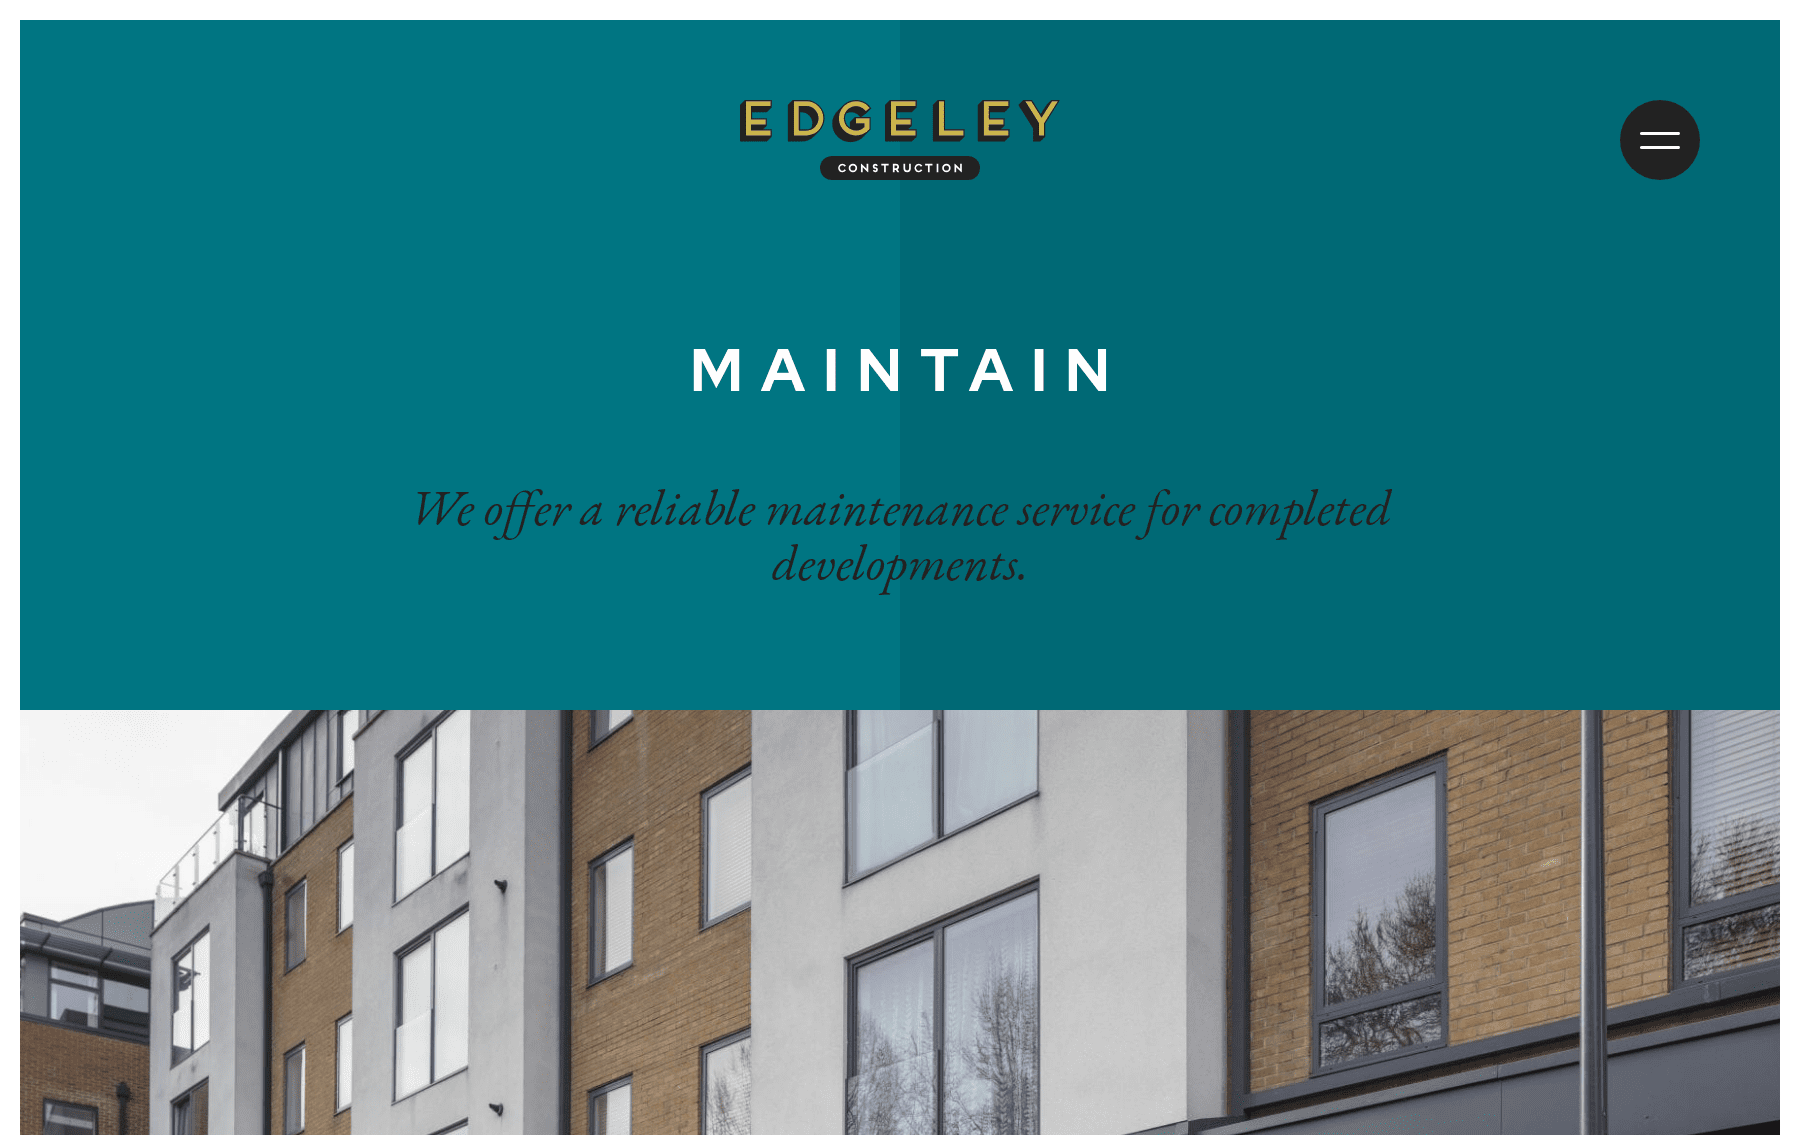 edgeley-co-1800x1135desktop-d0962e